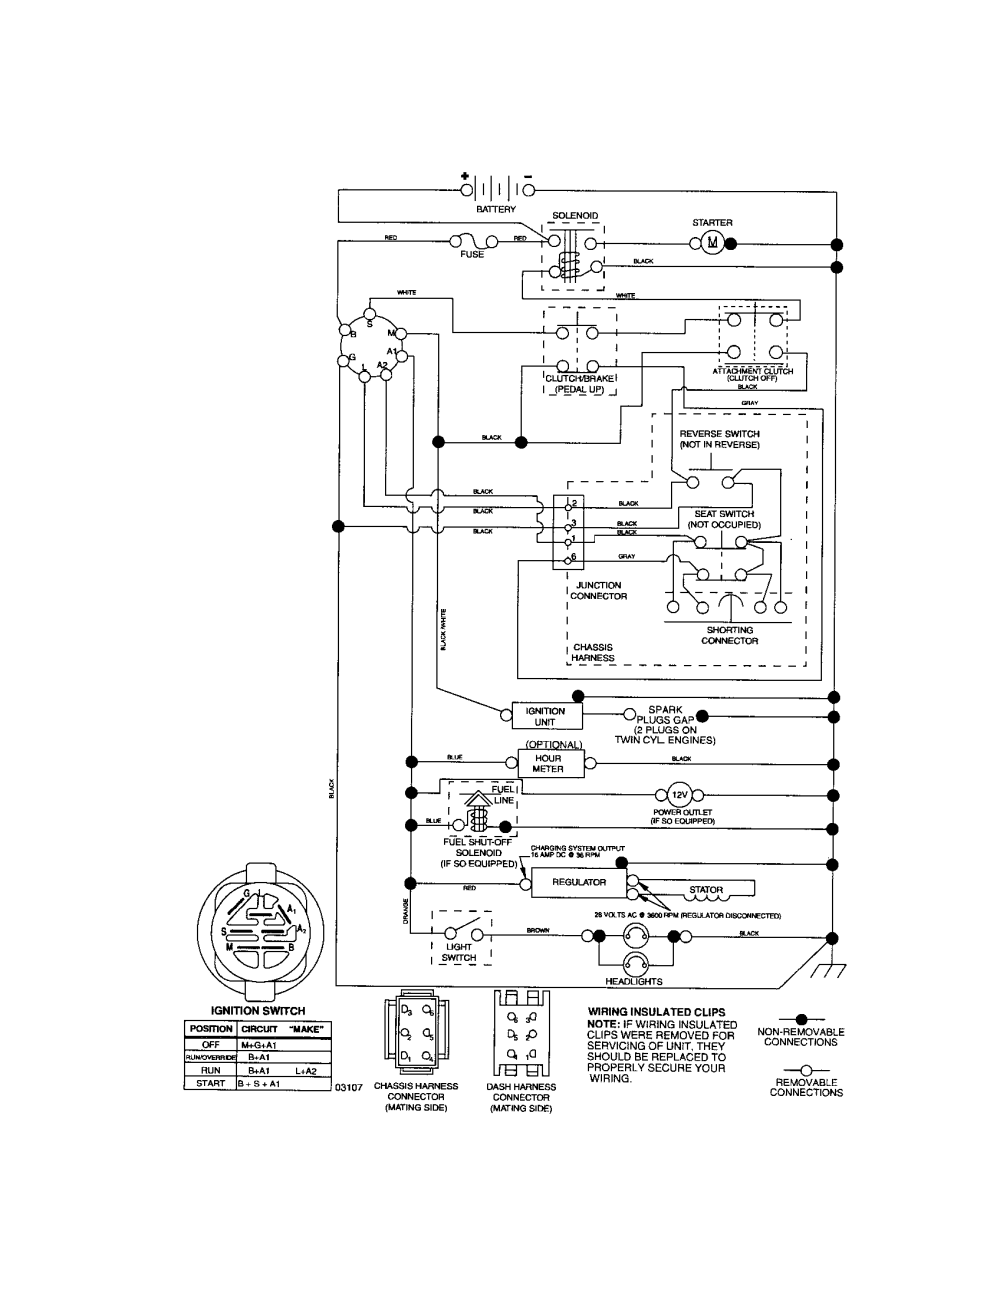 Murray Riding Mower Wiring Schematic - mtd 13b326jc758